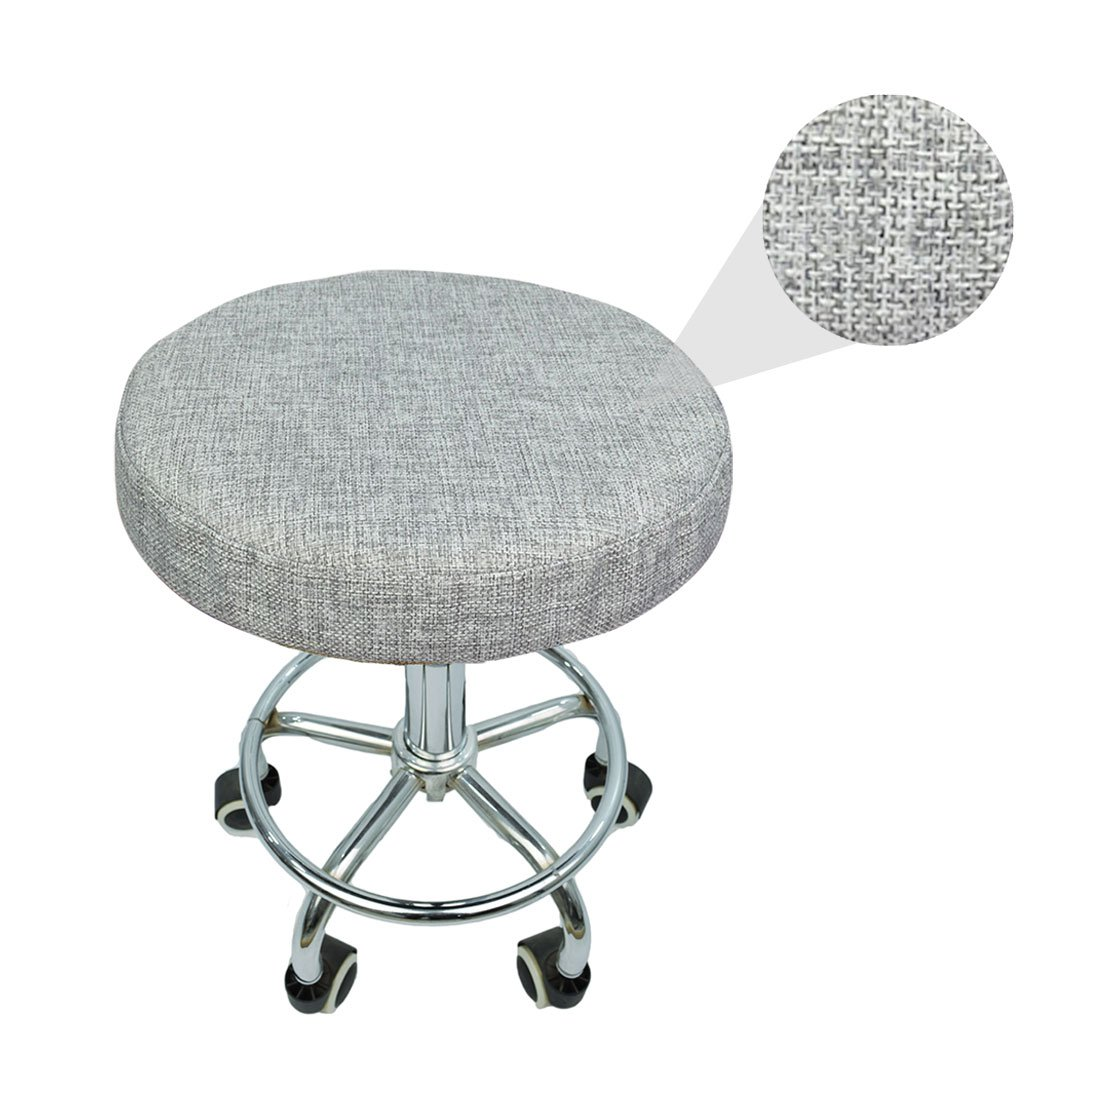 Levoberg Round Stool Cover of linen Bar Stool Cushions with Elastic Chair Slipcover Decor 15.74inch #2